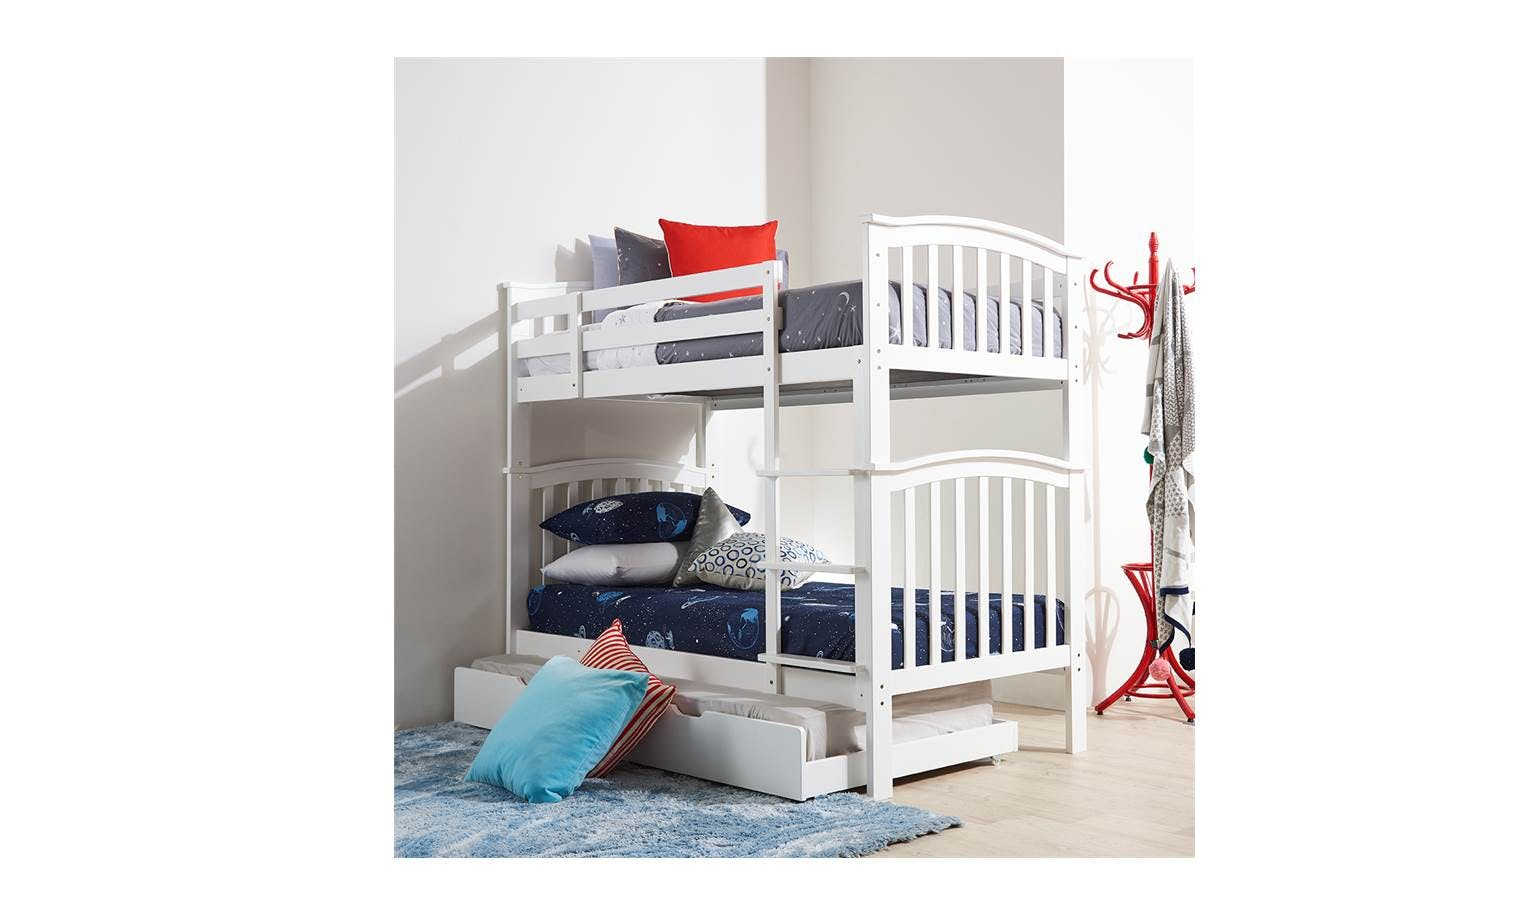 Athens Bunk Bed Single Size Option To Purchase Pullout Bed Harvey Norman Singapore